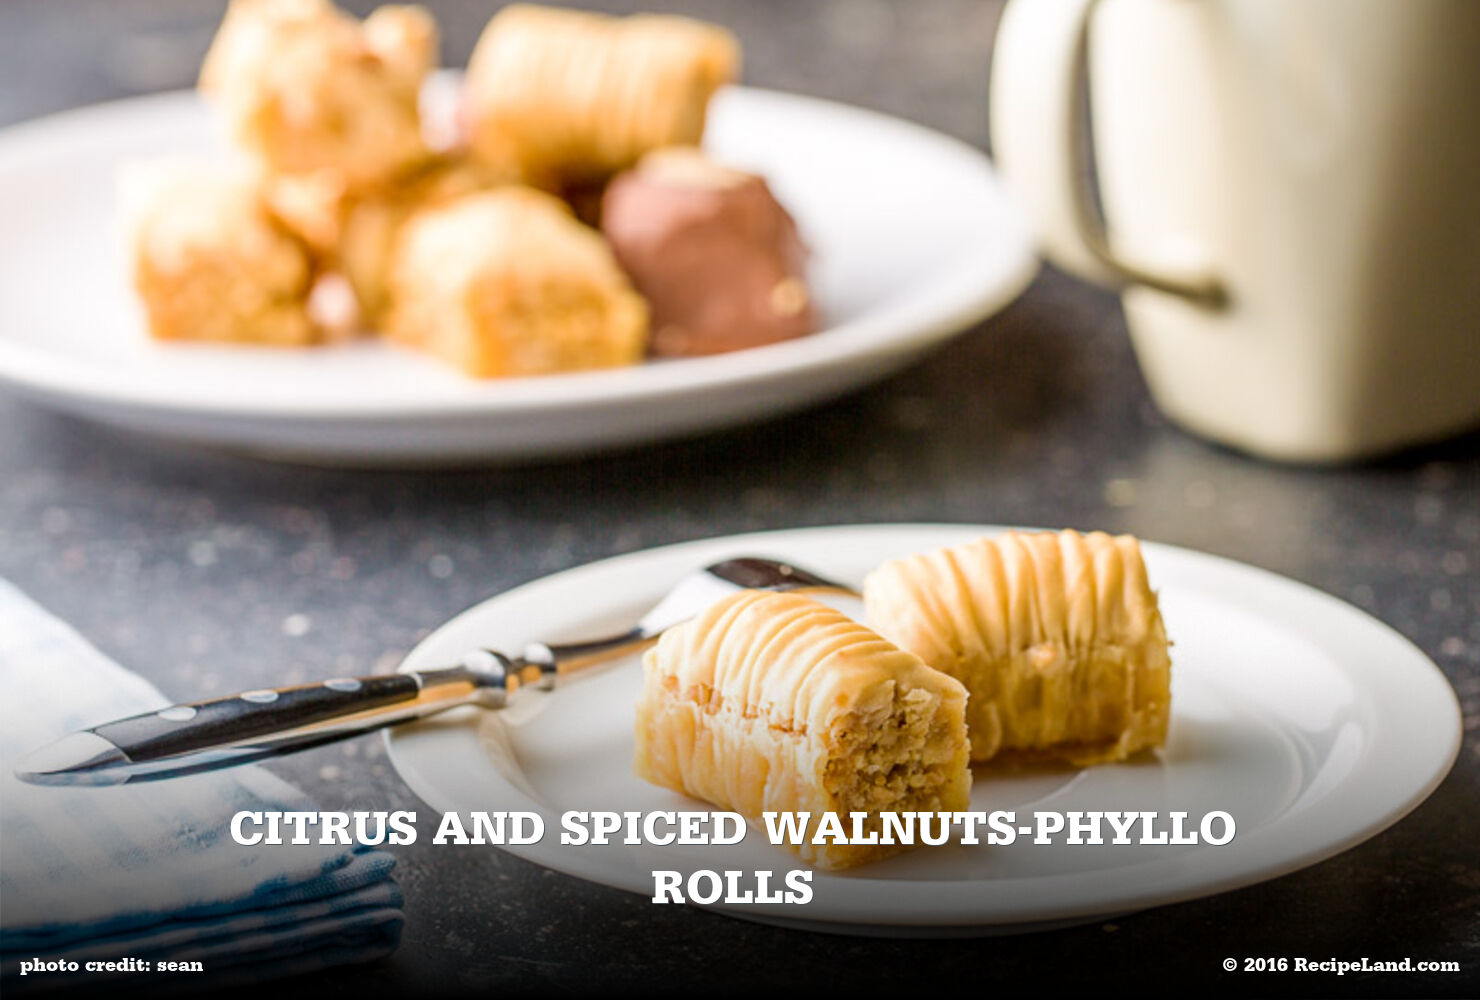 Citrus and Spiced Walnuts-Phyllo Rolls